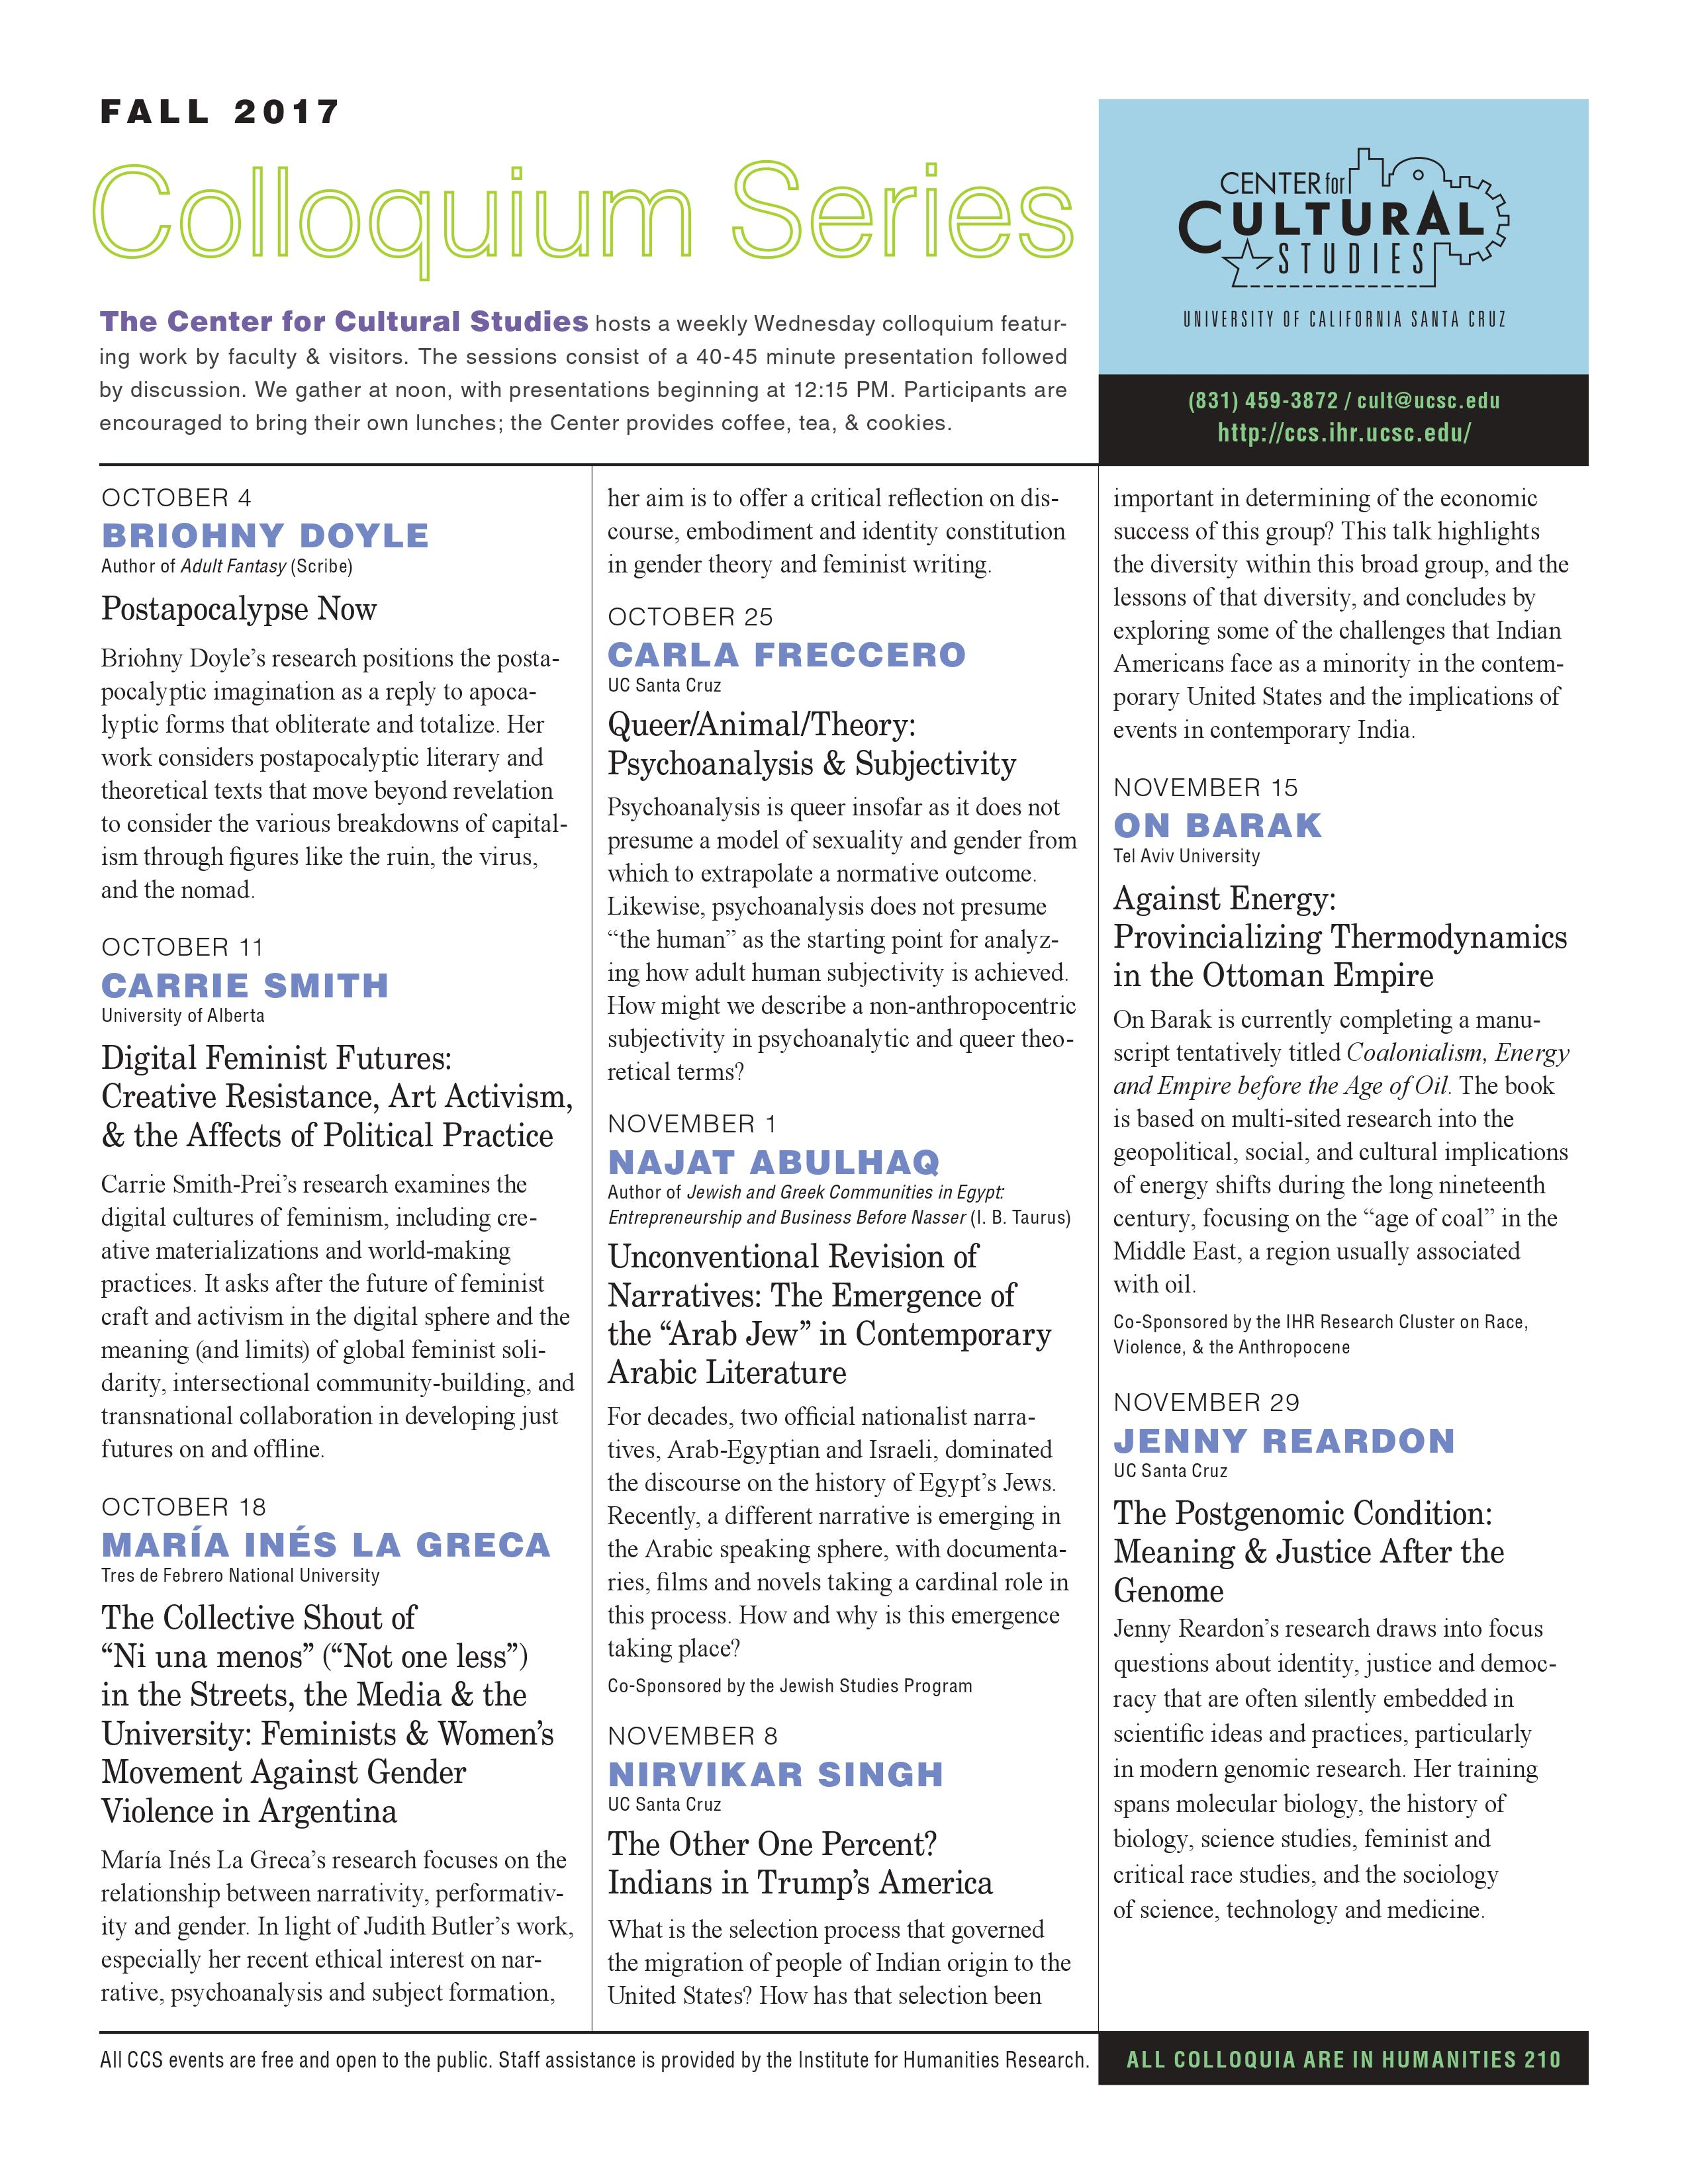 Pg 1 of the newsletter, highlighting the fall 2017 Colloquium series, appears.